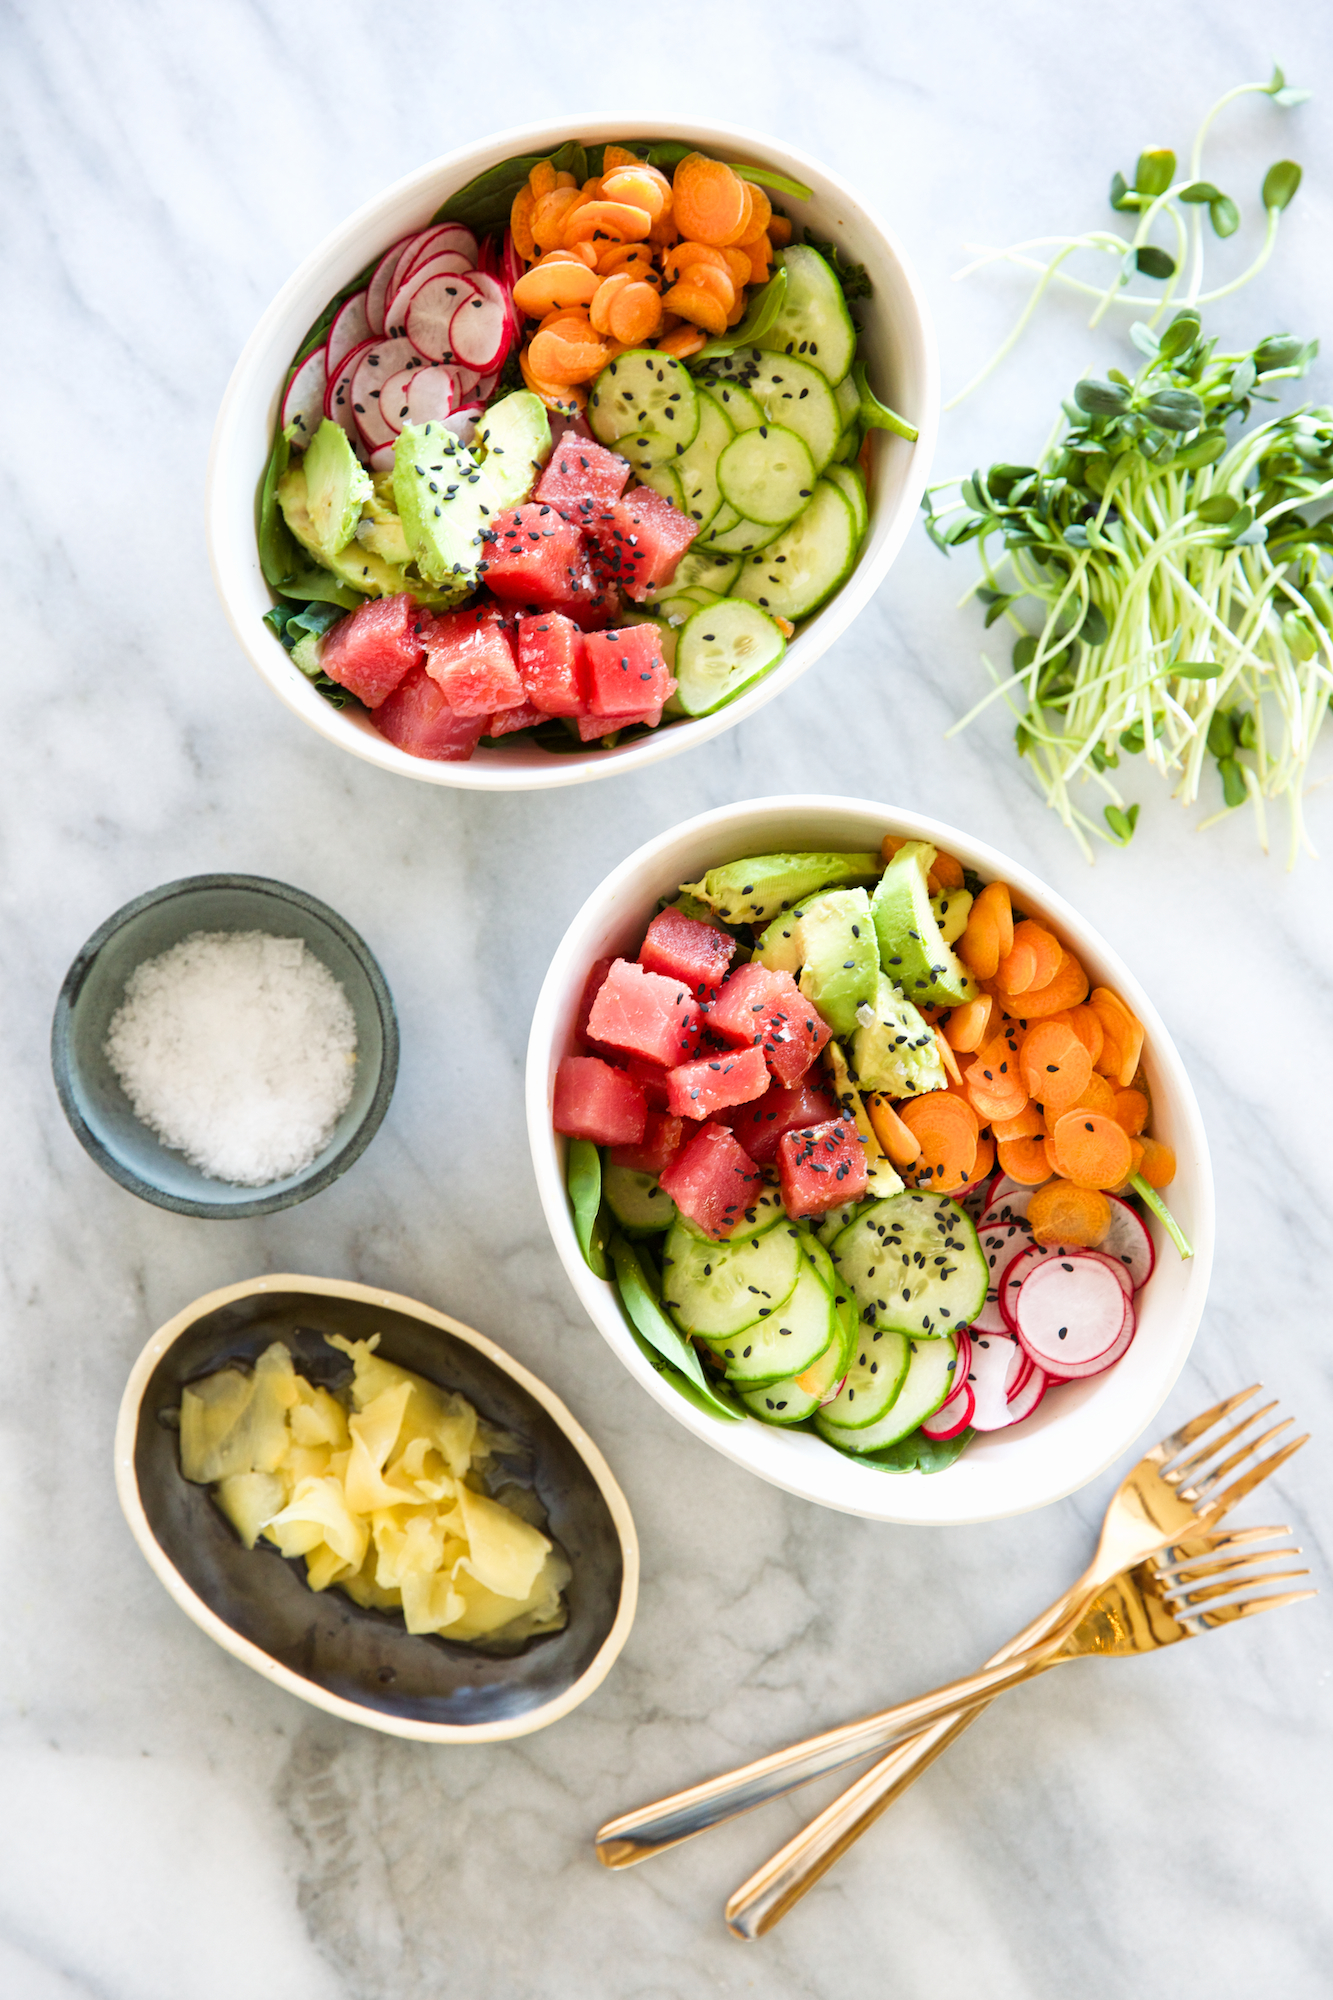 http://camillestyles.com/food-and-drink/from-camilles-kitchen/ahi-tuna-poke-bowl/